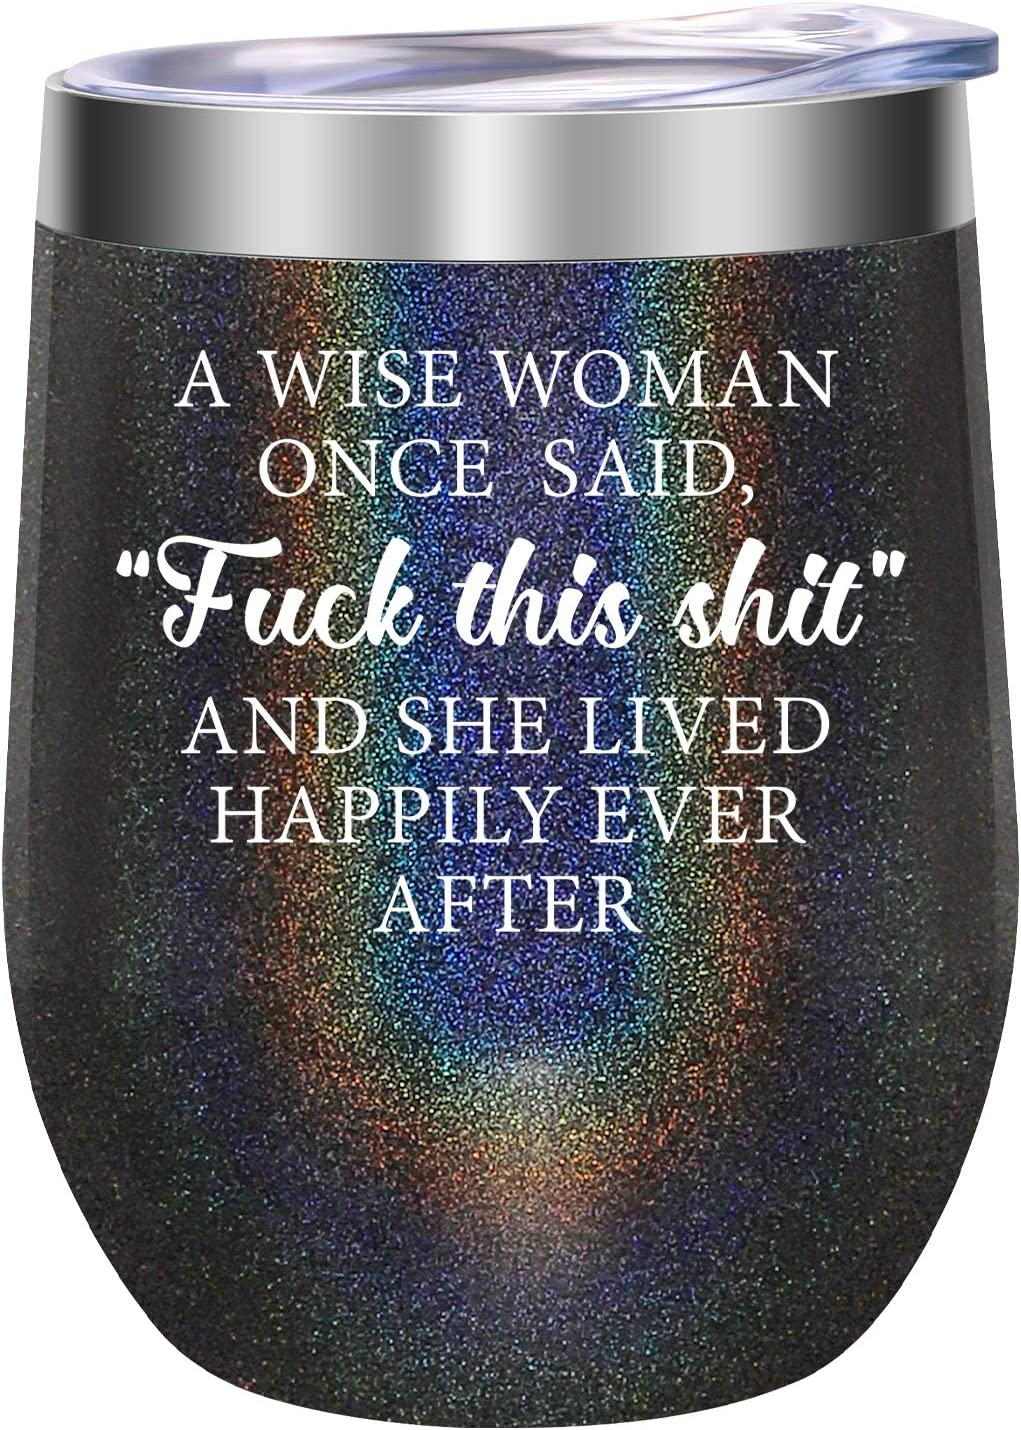 Gifts for Women - A Wise Woman Once Said - Funny Birthday, Retirement, Friendship, Christmas Gifts for Women, Best Friends, Coworkers, Wife, Mom, Grandma, Sister, Aunt, Boss, Her - LEADO Wine Tumbler